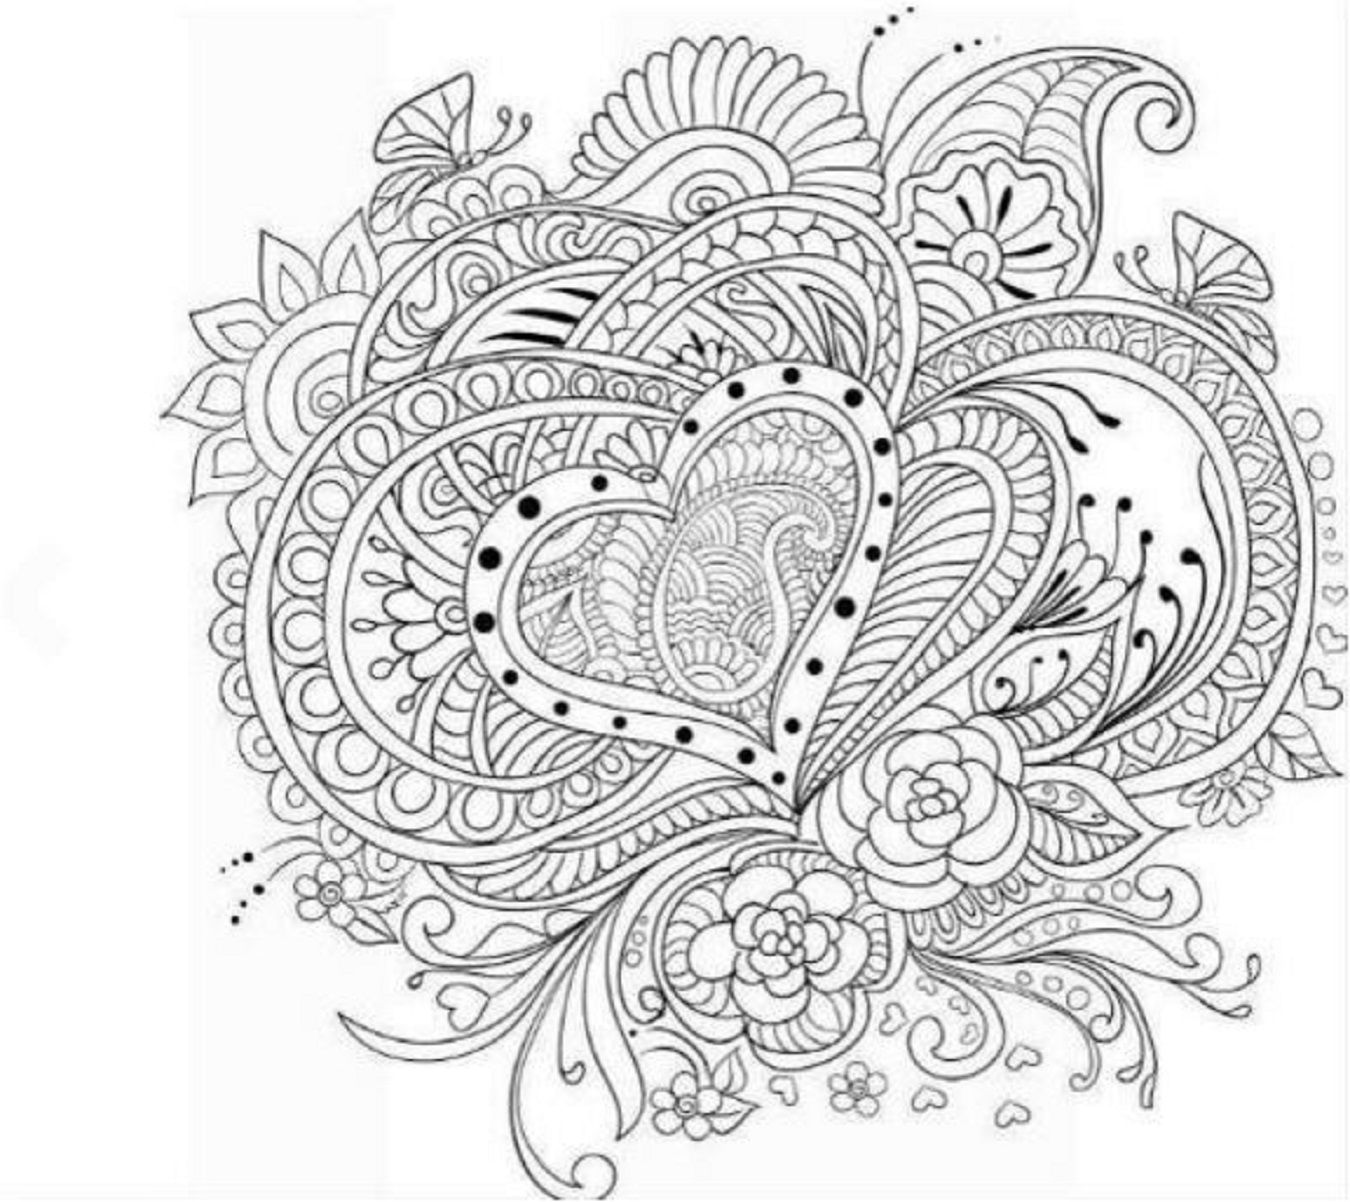 Art therapy coloring book michael omara - Adult Coloring Books Art Theraphy For The Mind Color Of Love Express Your Love And Affection To Your Sweet Heart With Your Creative Colors By Broderick